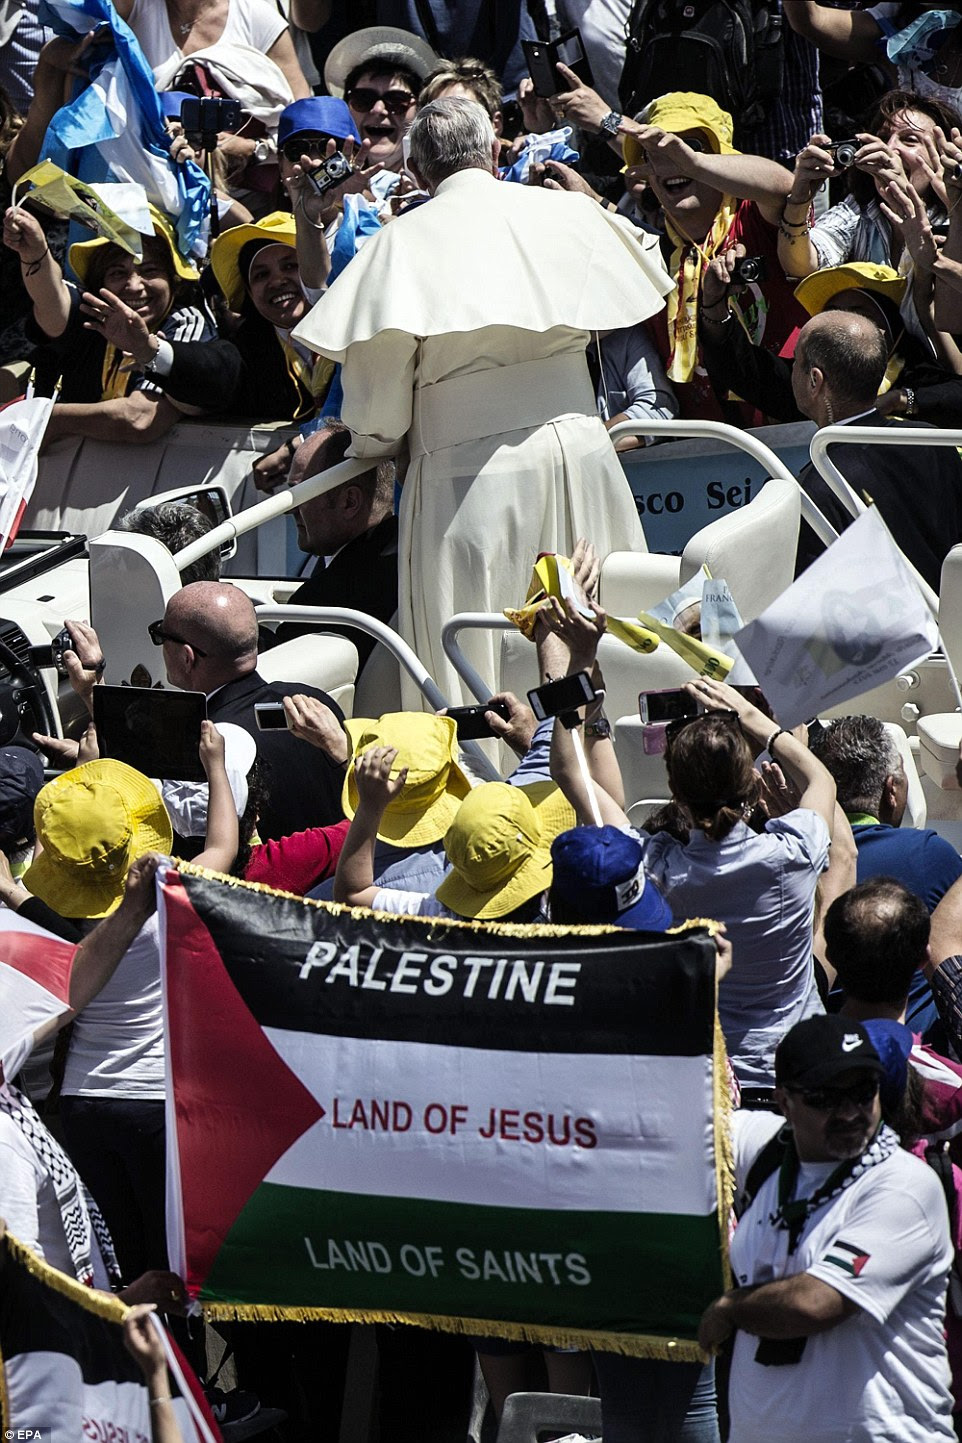 The Pope greets the cheering crowds at the end of the service, many of whom were waving Palestinian flags bearing the message 'Palestine: Land of Jesus, Land of Saints'